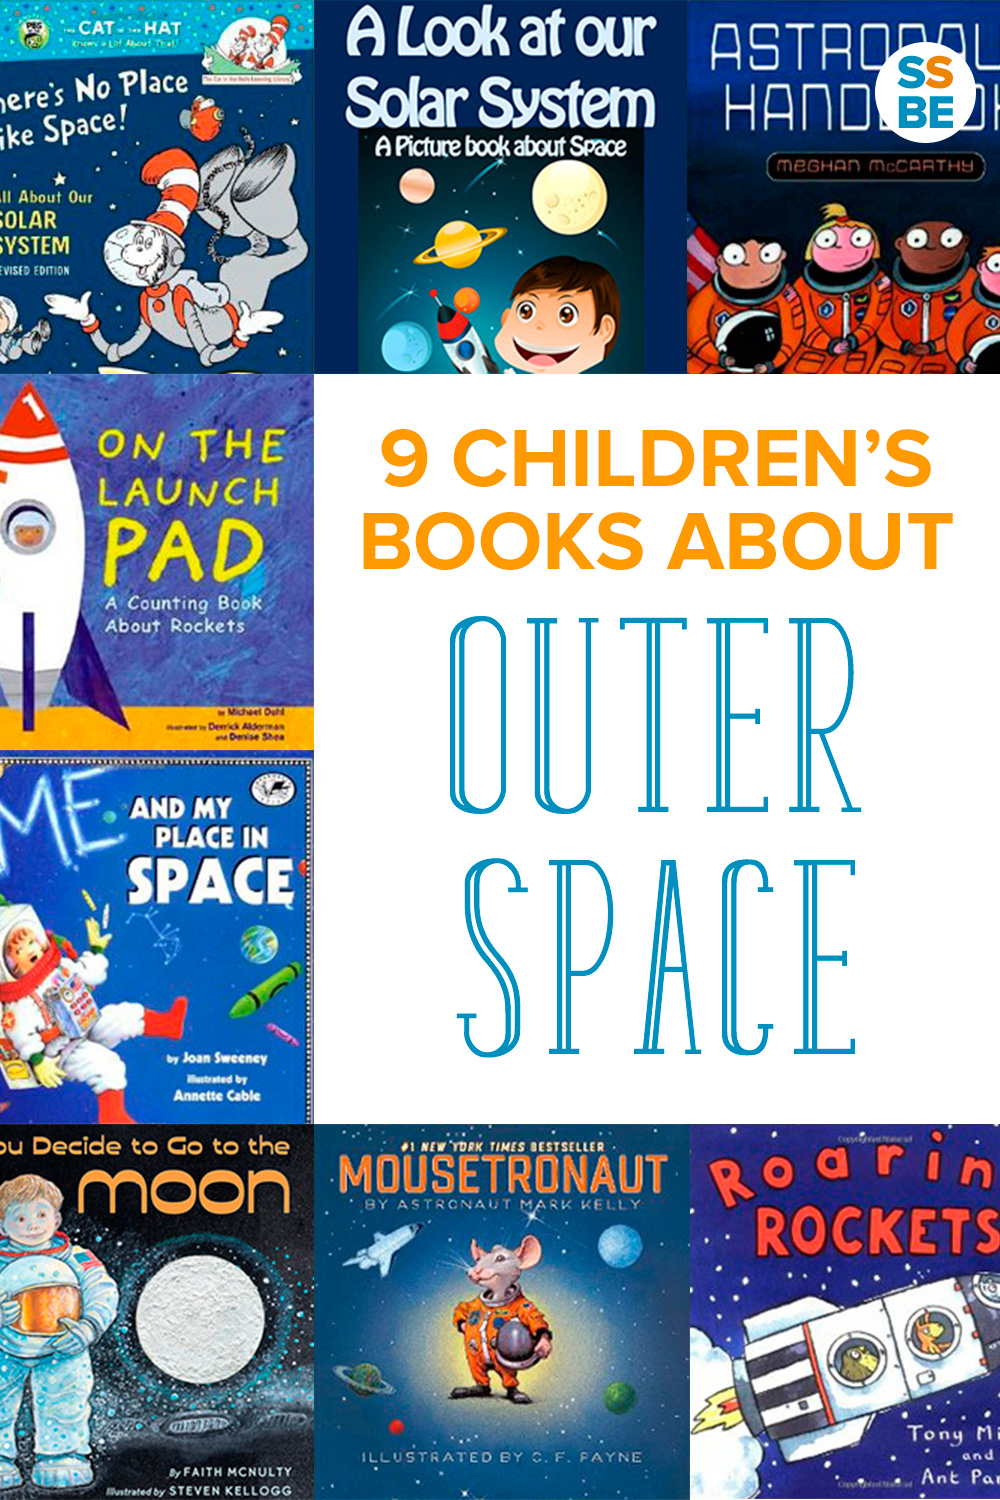 Does your child enjoy space, planets and the universe? Here are 10 space books for preschoolers to read with your child.